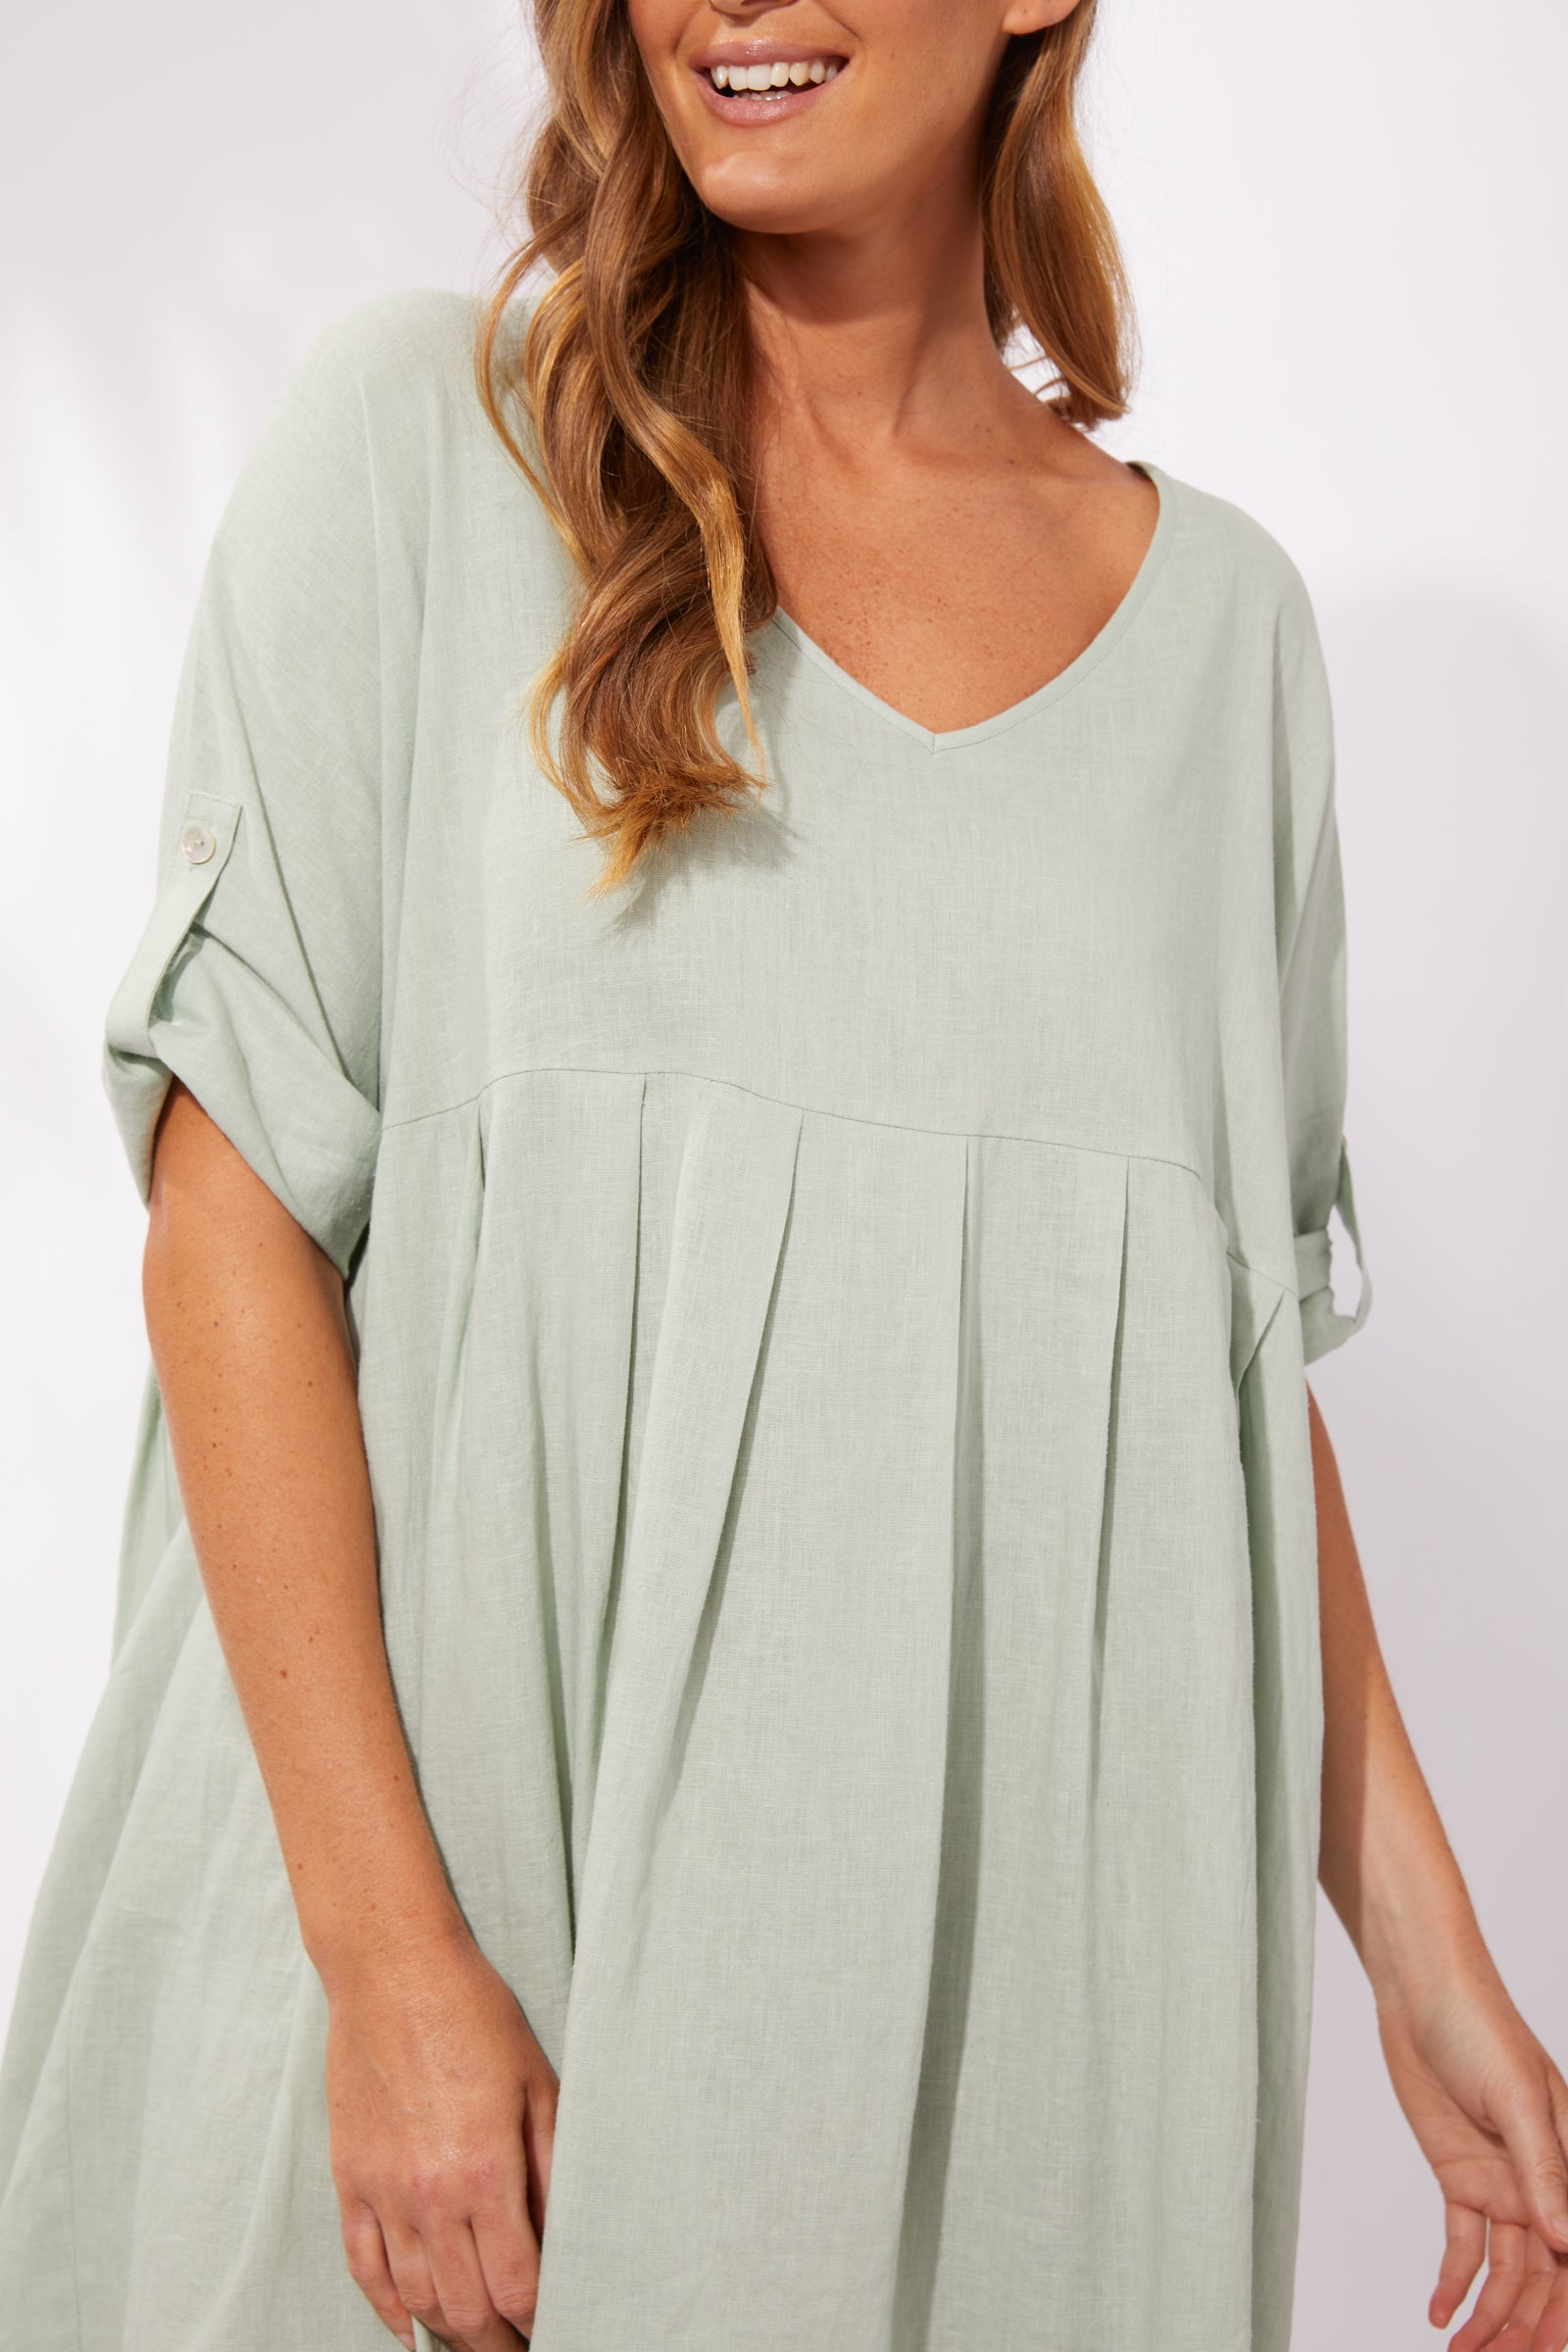 Cuban V Top/Dress - Mint - The Haven Co